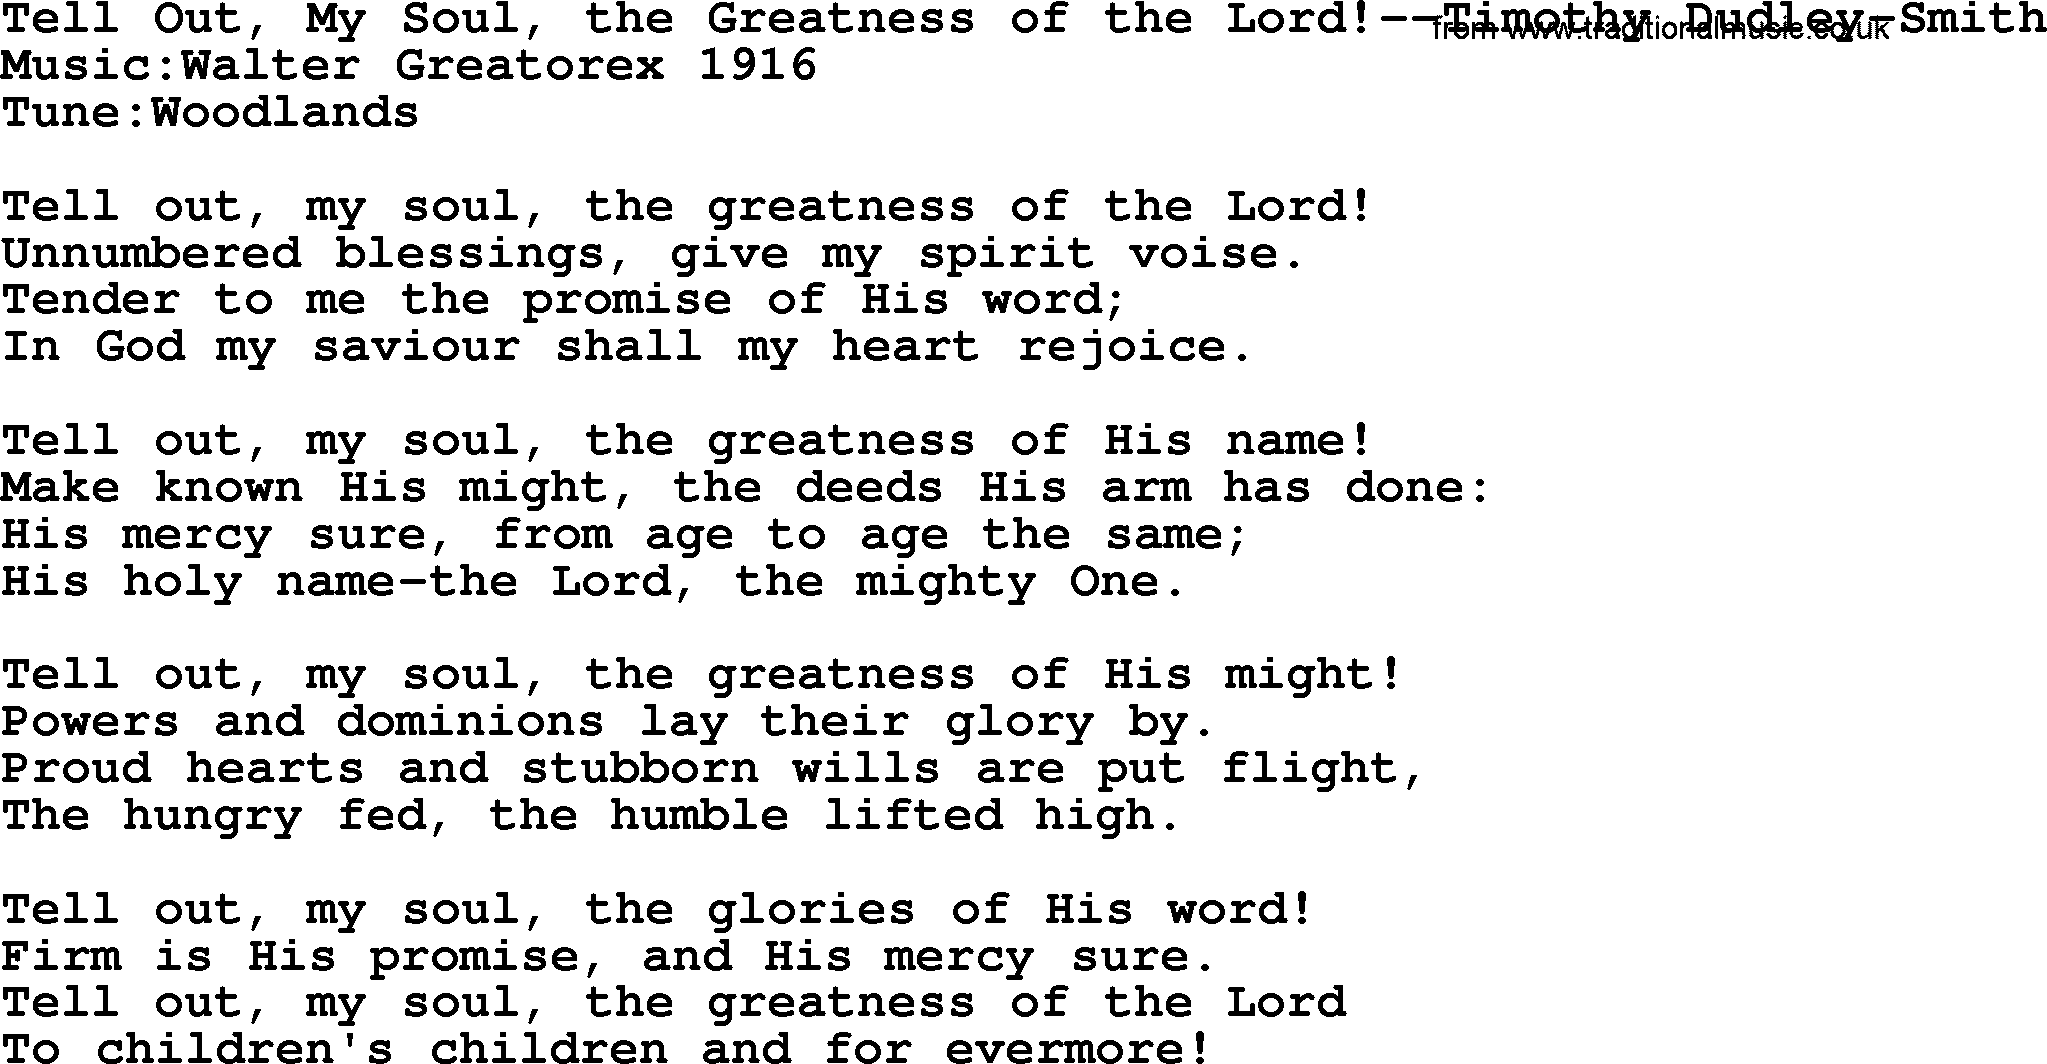 The greatness of the lord lyrics